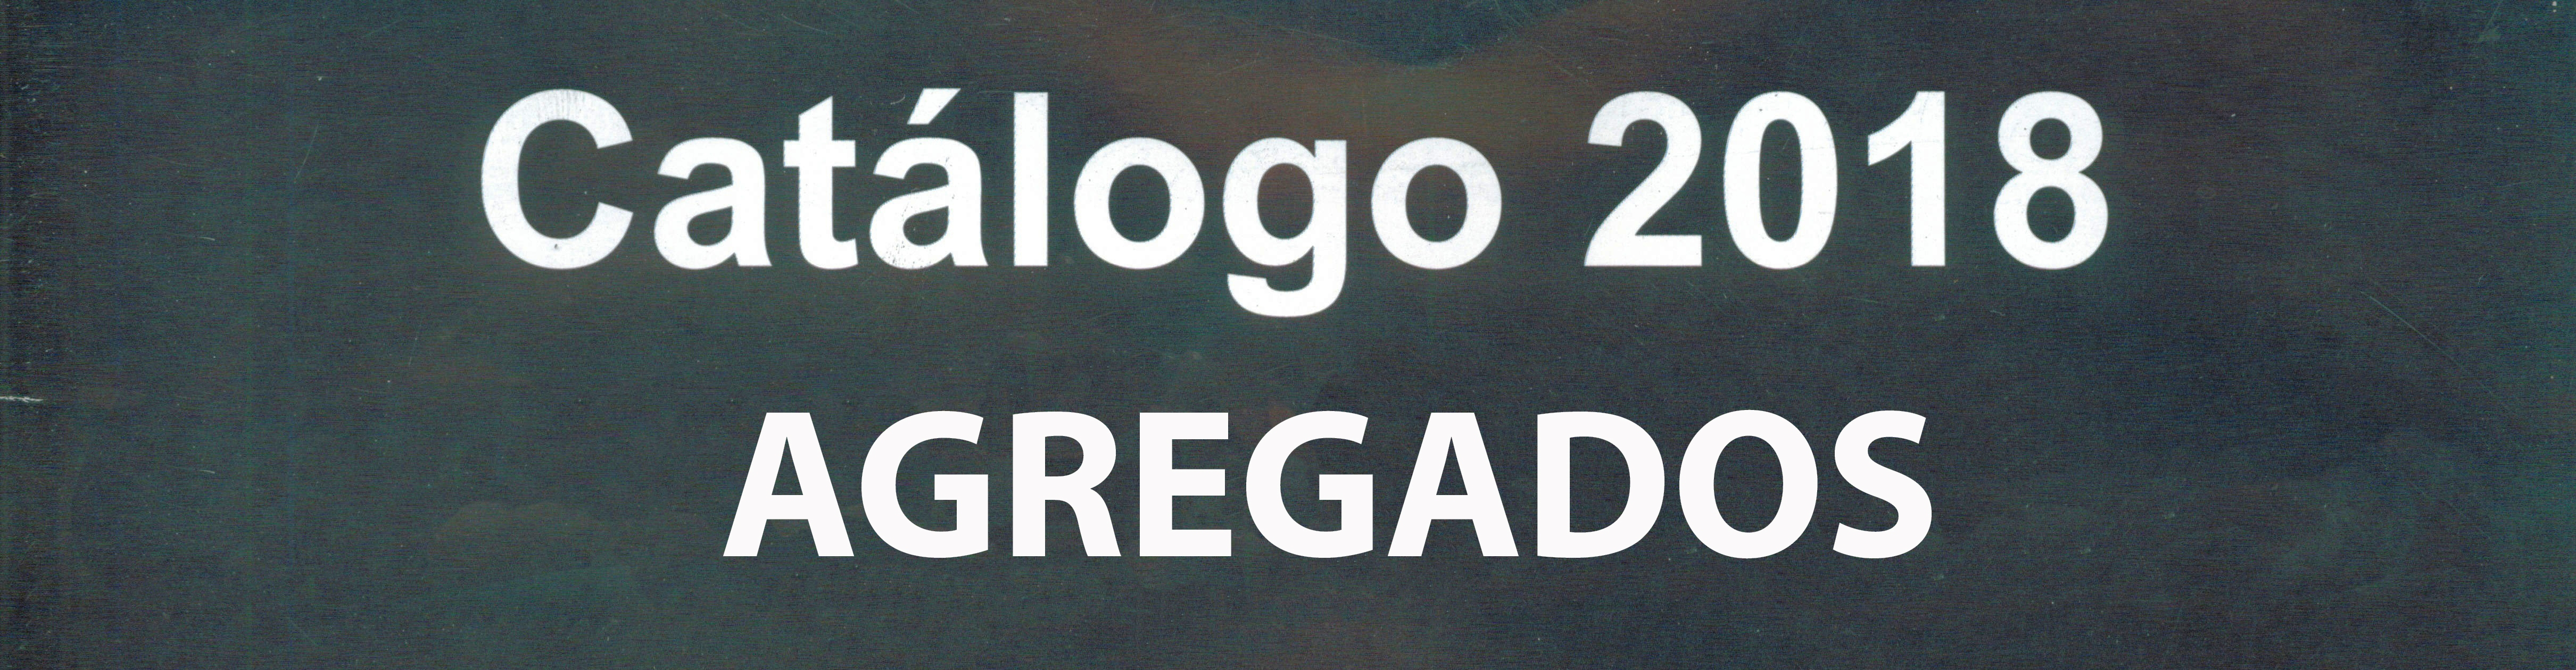 AGREGADOS CATALOGO 2018 (JUNIO 2019)